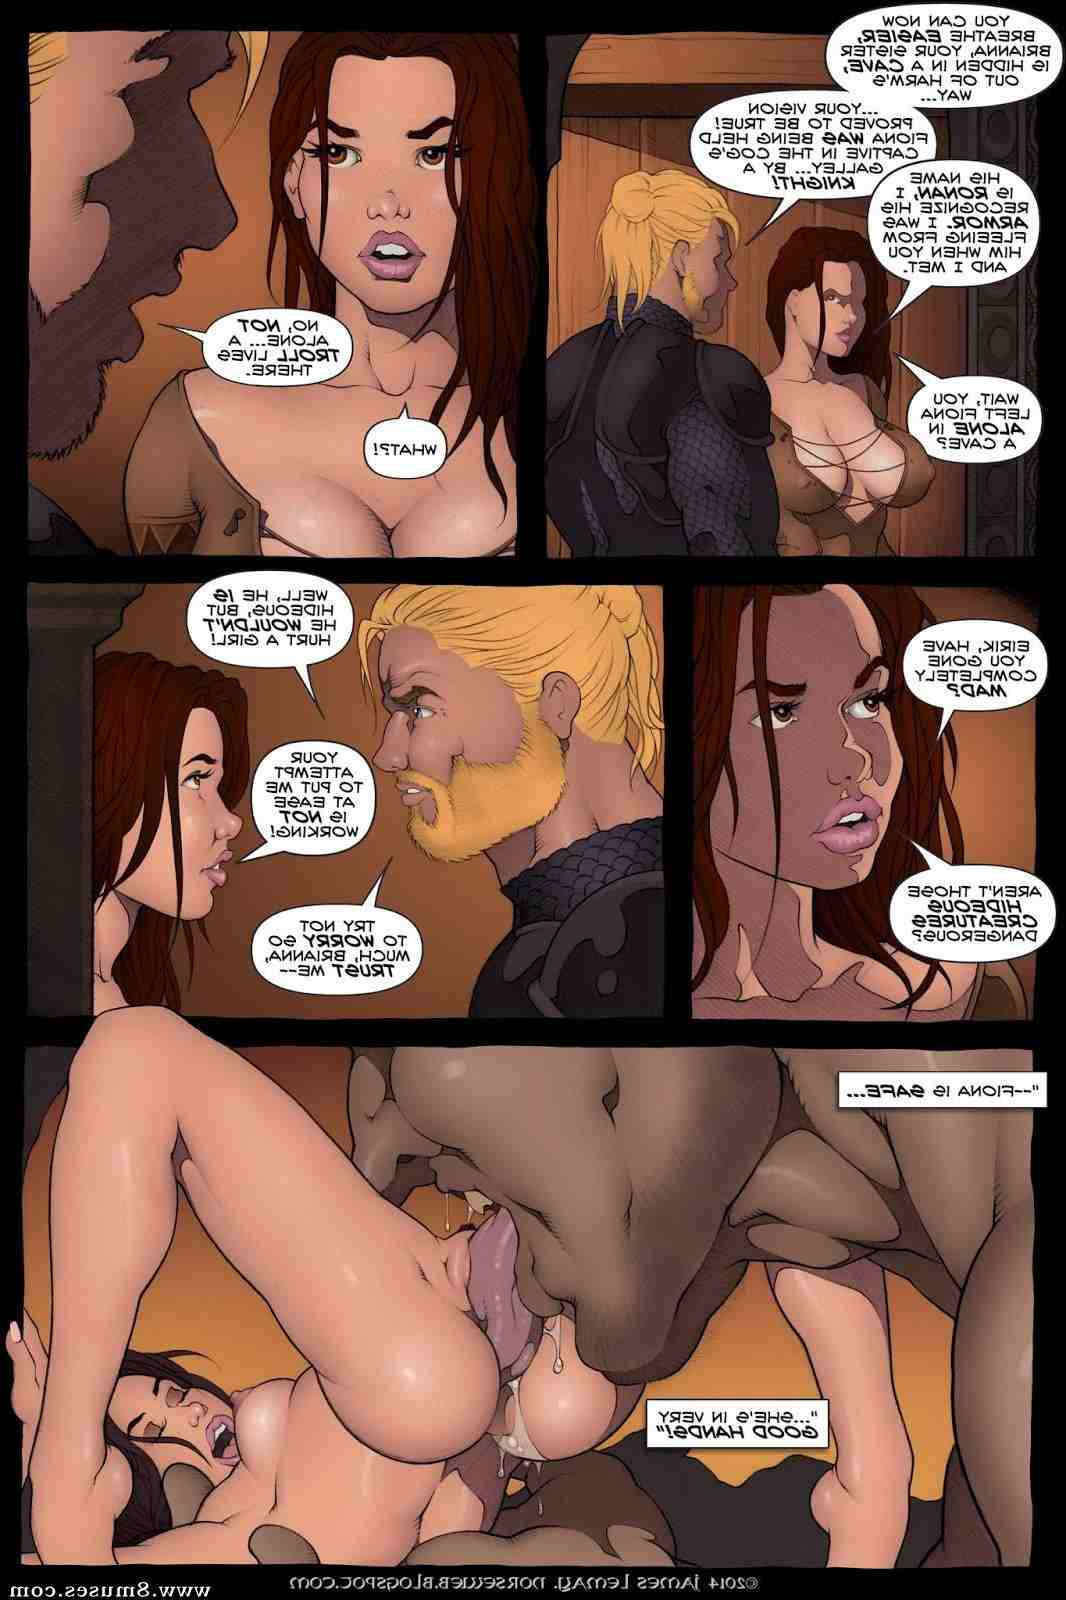 James-Lemay-Comics/Norse-Dawn-of-The-Shield-Maiden Norse_Dawn_of_The_Shield_Maiden__8muses_-_Sex_and_Porn_Comics_110.jpg